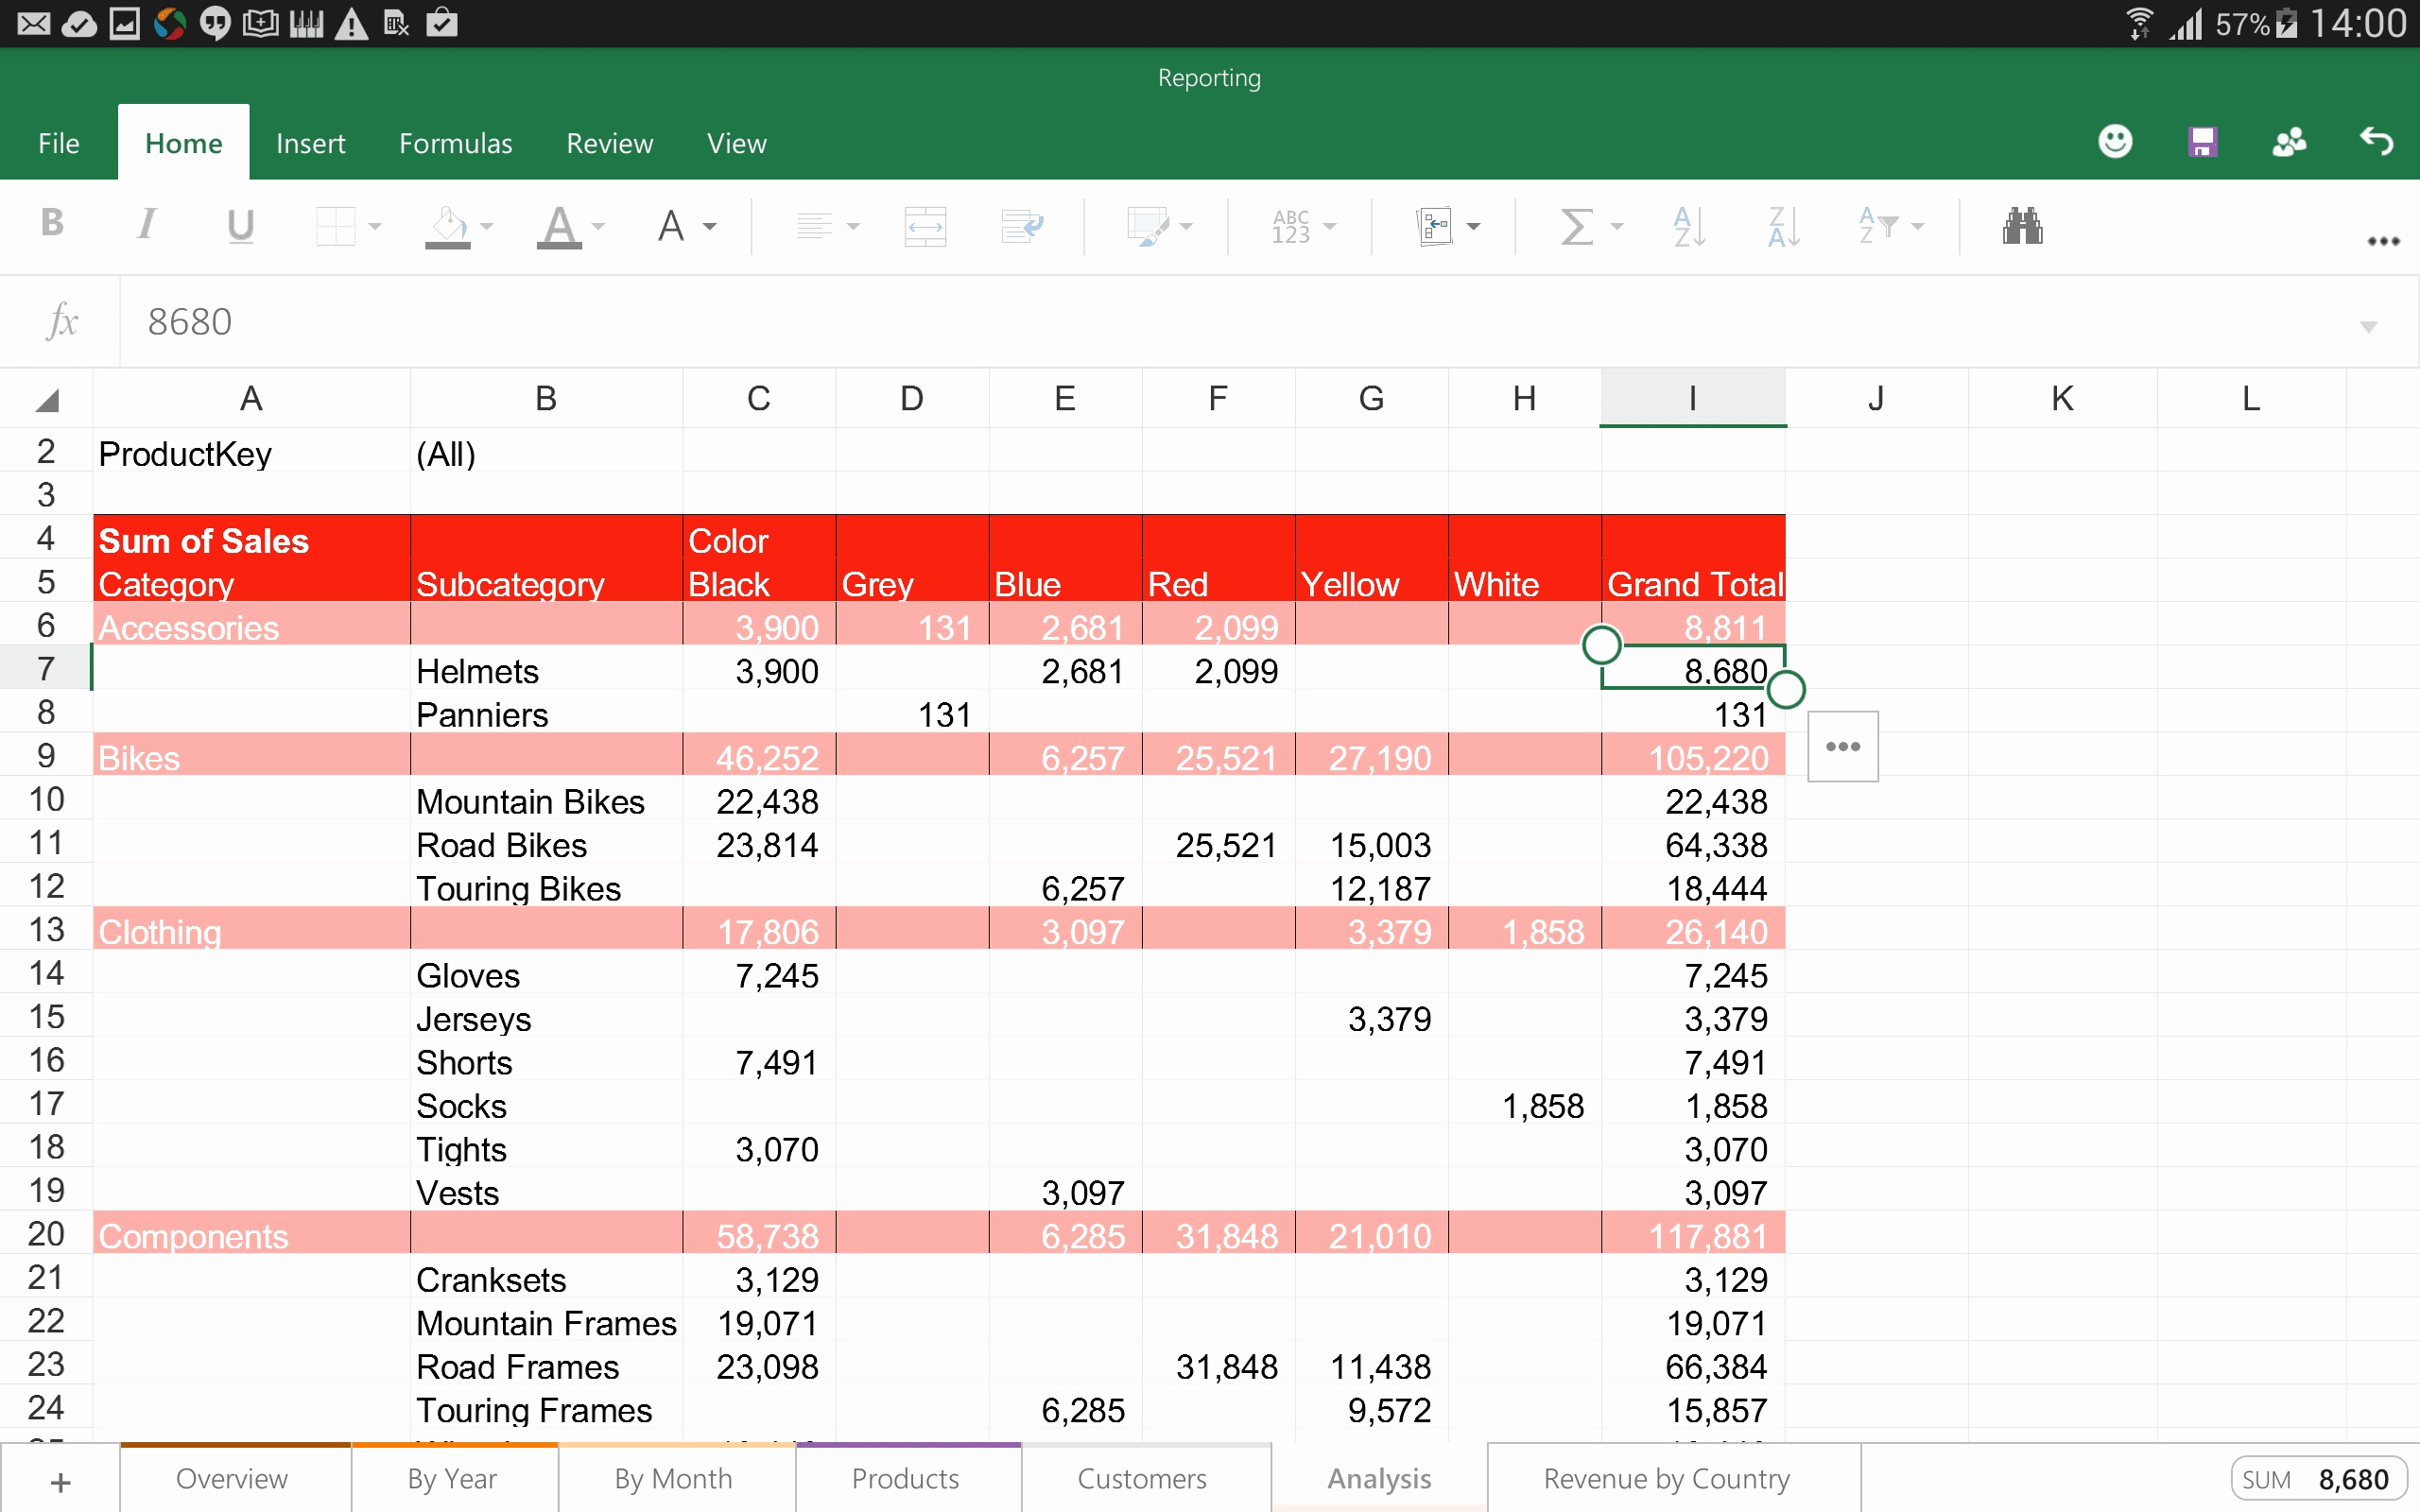 Microsoft Excel Spreadsheet Instructions Intended For Microsoft Excel Spreadsheet Instructions Lovely How To Make A